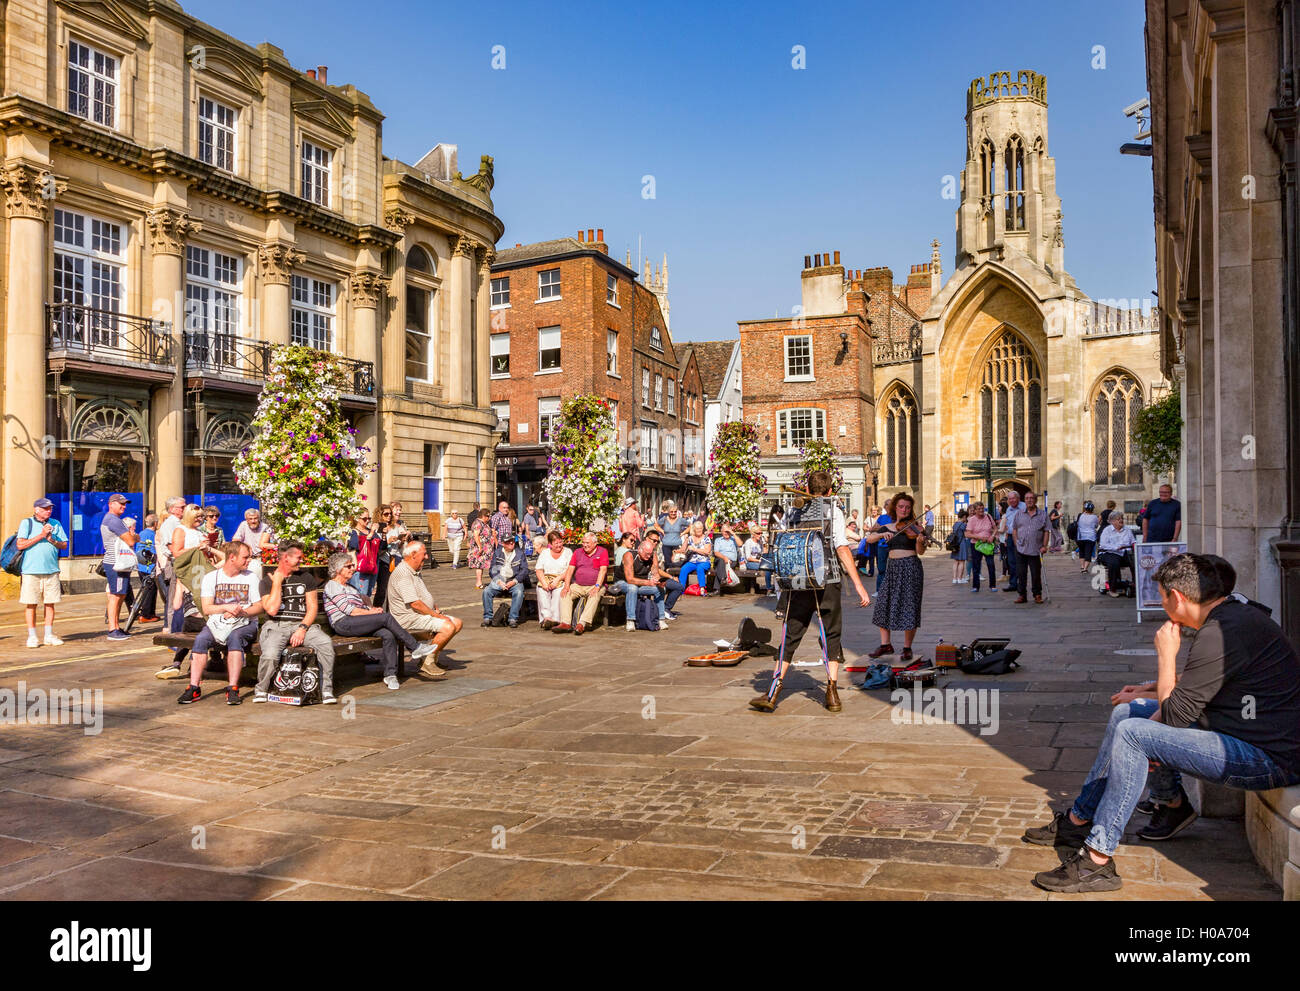 Crowds watching one man band busking in St Helen's Square, York, North Yorkshire, England, UK - Stock Image